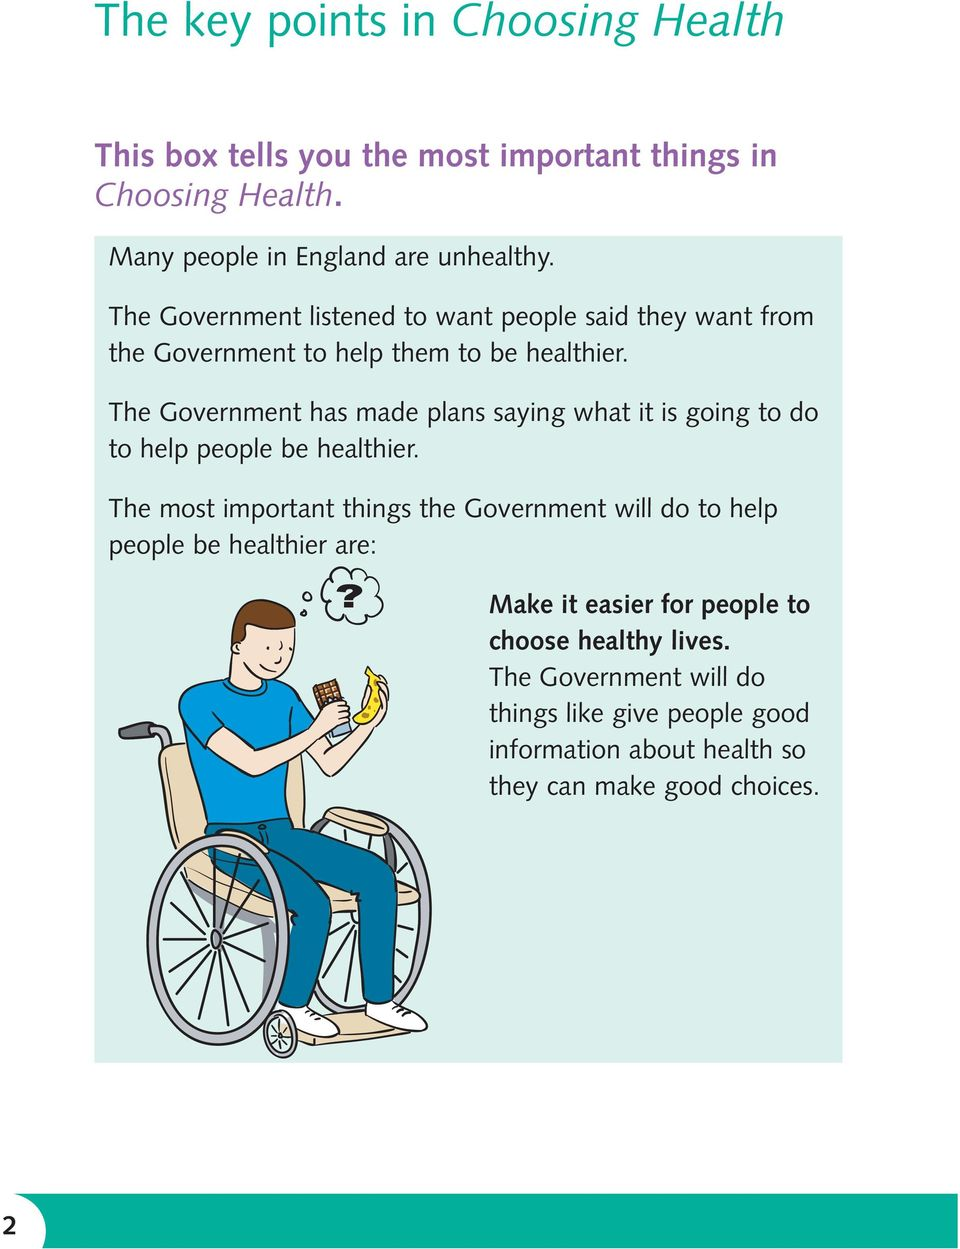 The Government has made plans saying what it is going to do to help people be healthier.